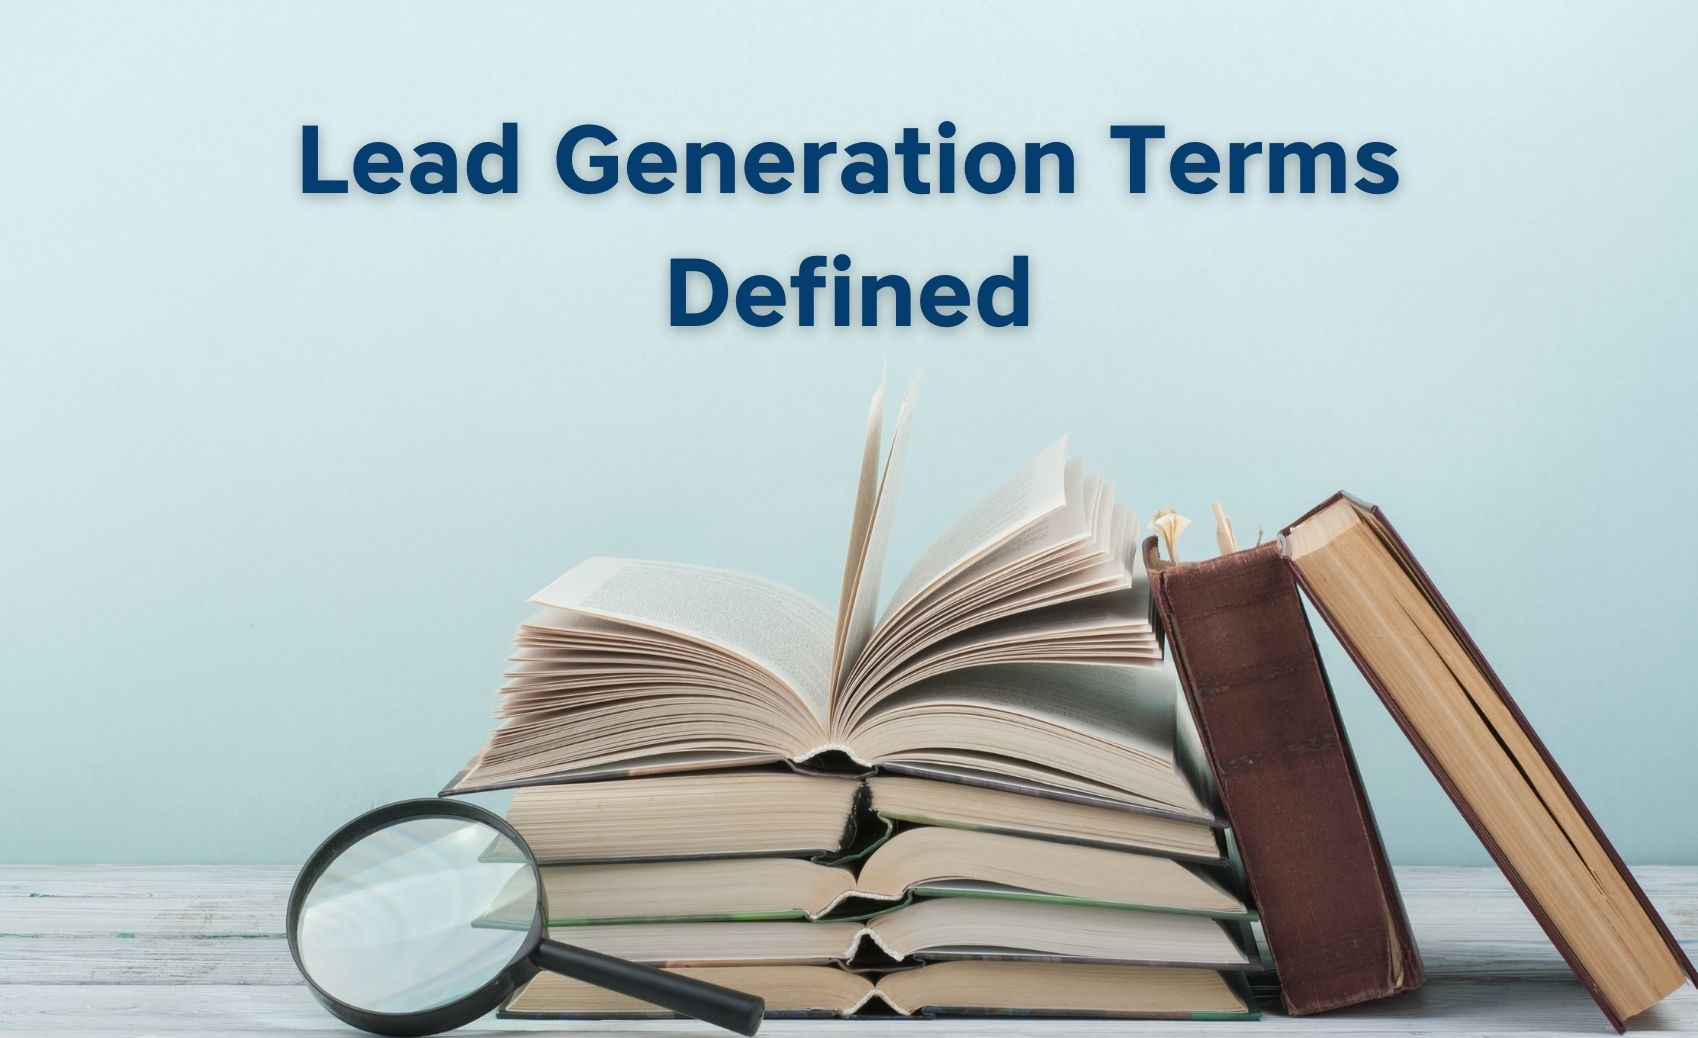 Top Lead Generation Terms Defined For Home Service Businesses